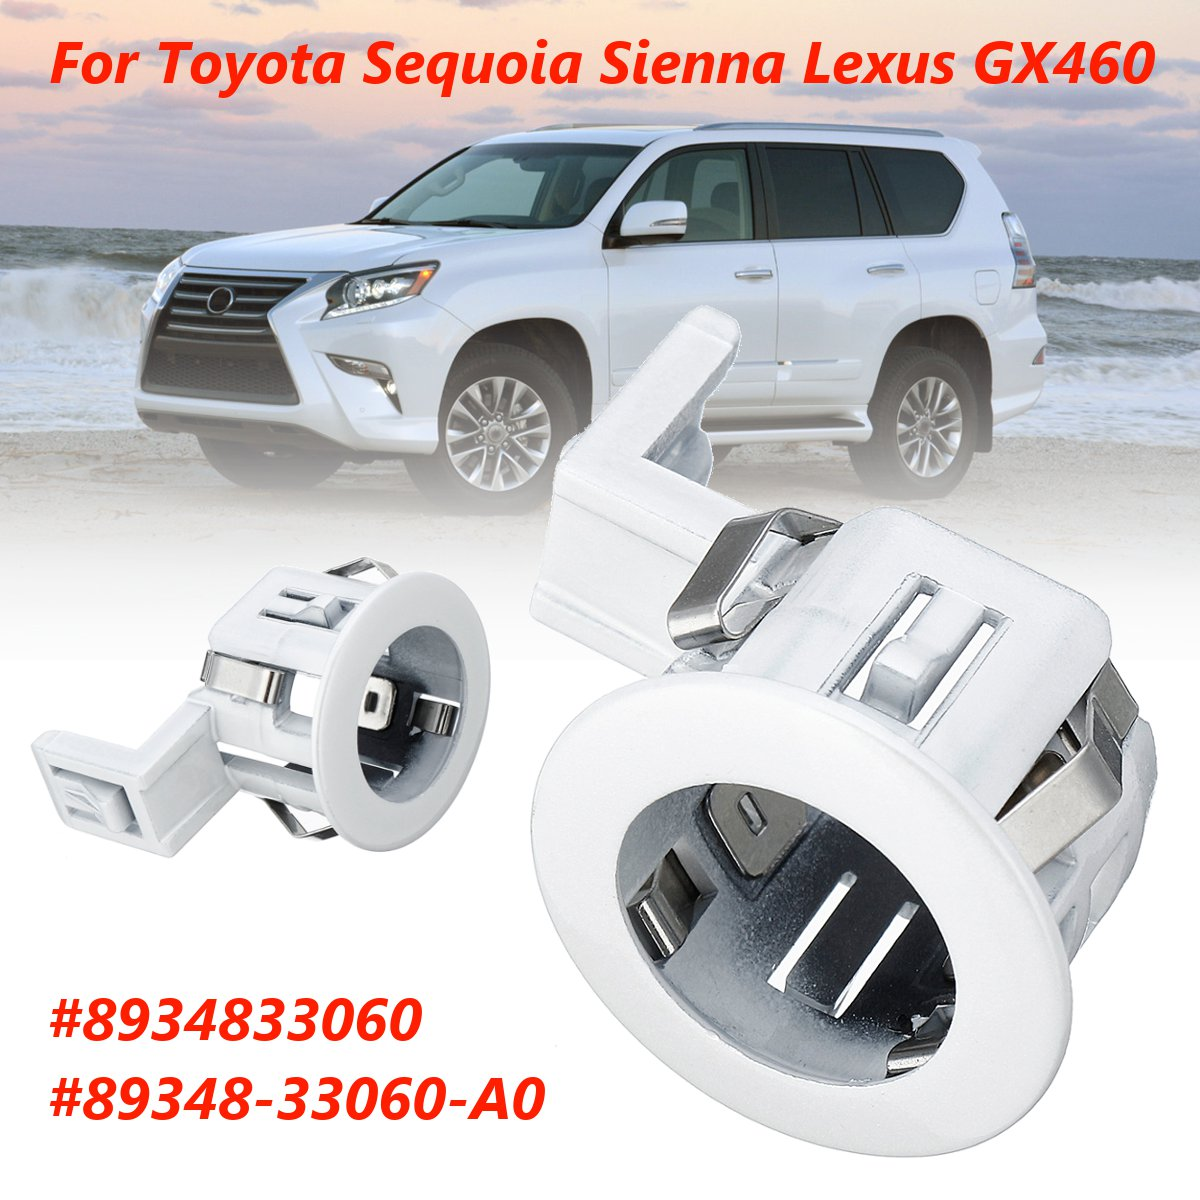 US $1 55 37% OFF|Parking Sensor Retainer PDC For Toyota Sequoia Sienna for  Lexus GX460 8934833060 89348 33060 A0-in Parking Sensors from Automobiles &